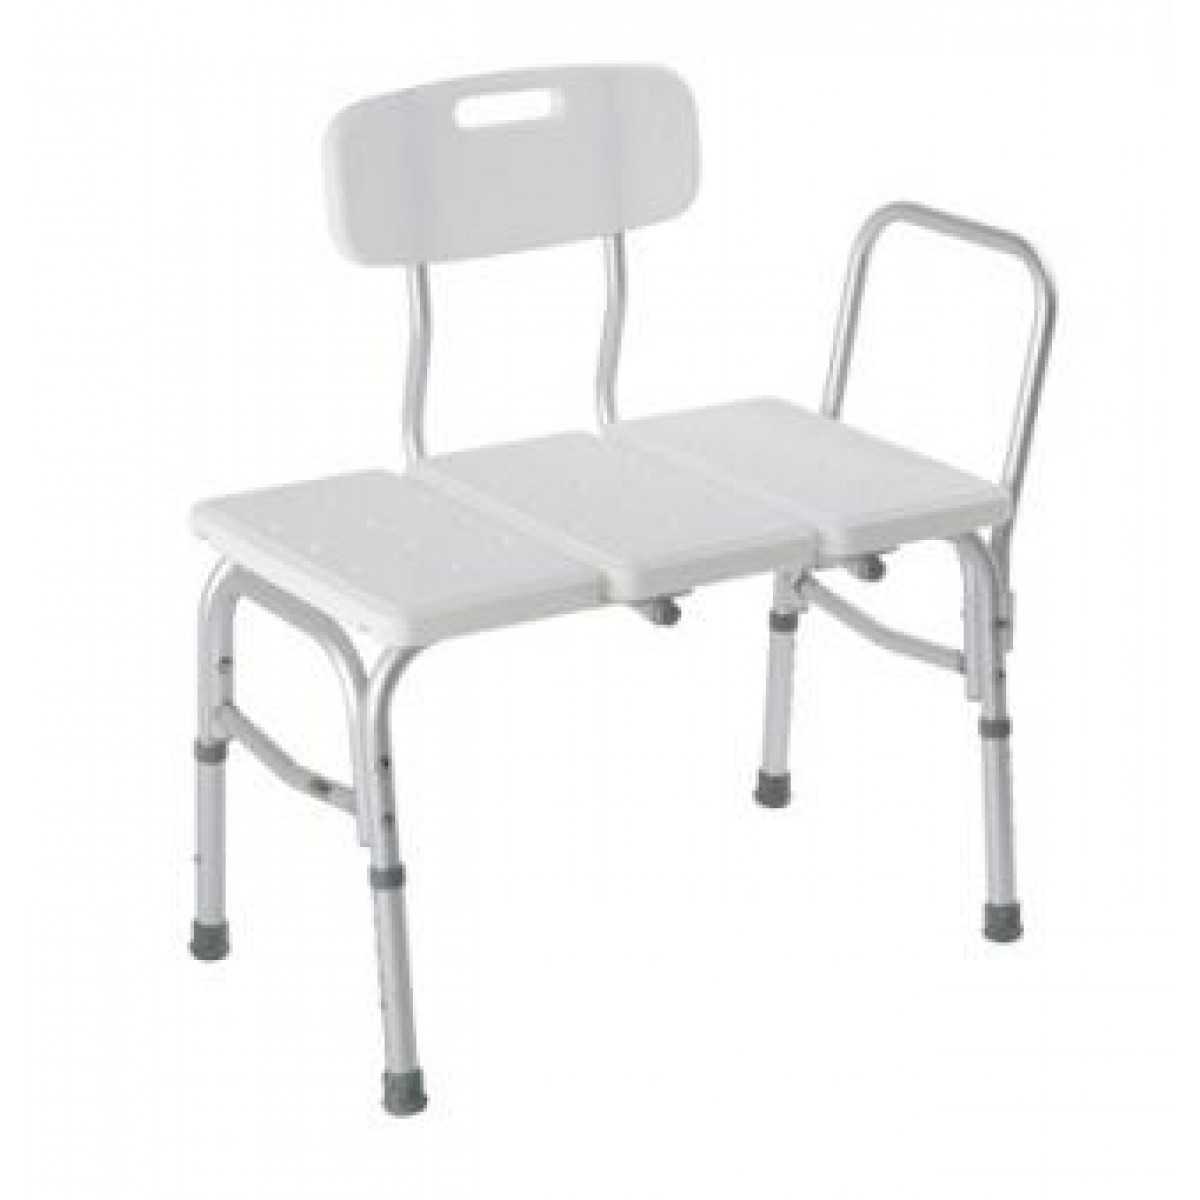 carex shower chair office tall bathtub transfer bench durable plastic on sale with